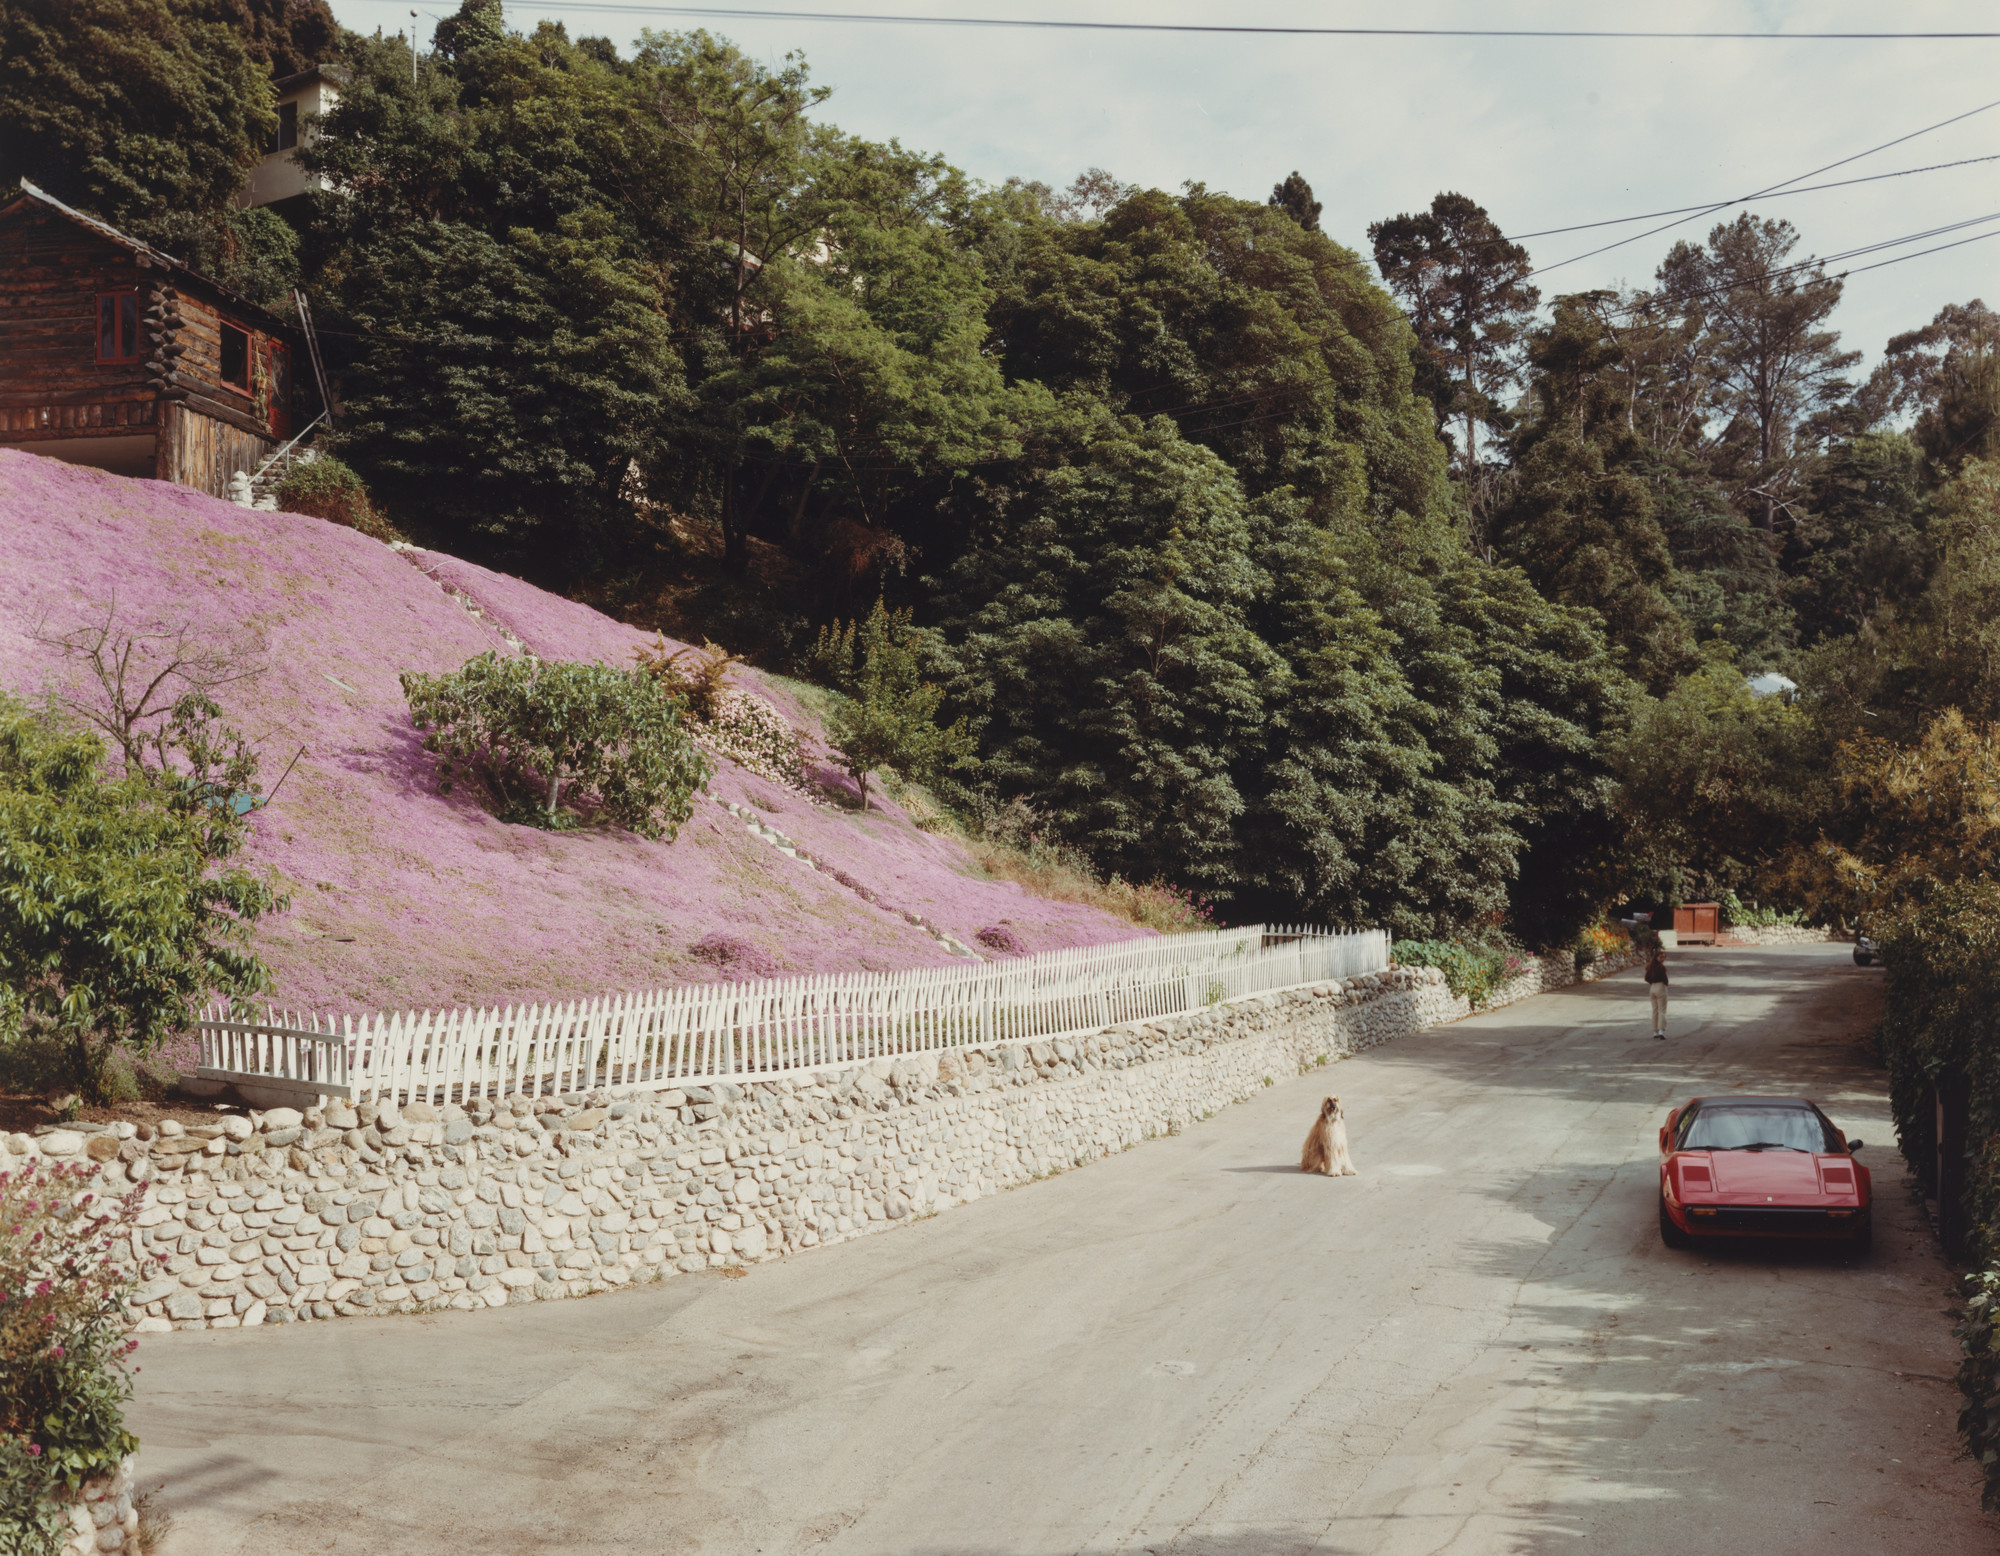 Joel Sternfeld Rustic Canyon Santa Monica California May 1979